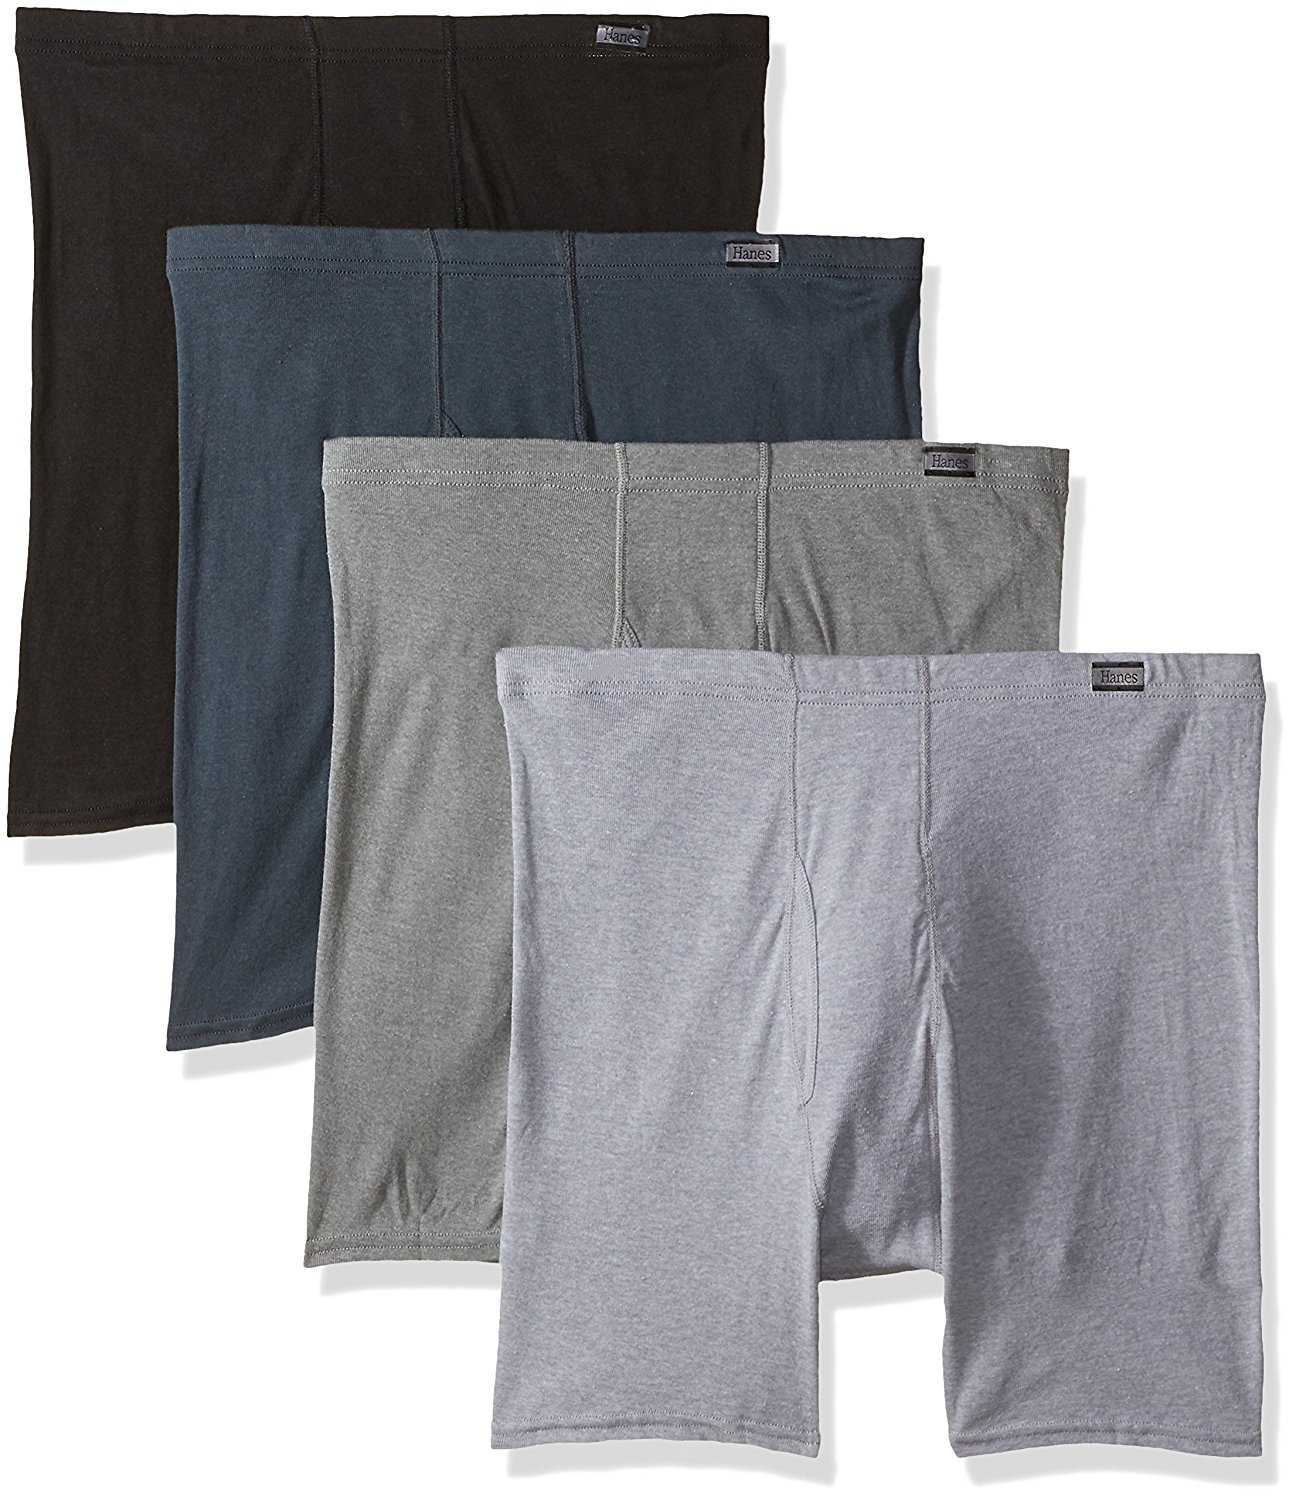 Hanes Mens 5-Pack Best Tagless Boxer Brief With Comfort Flex Waistband 2XL-copy